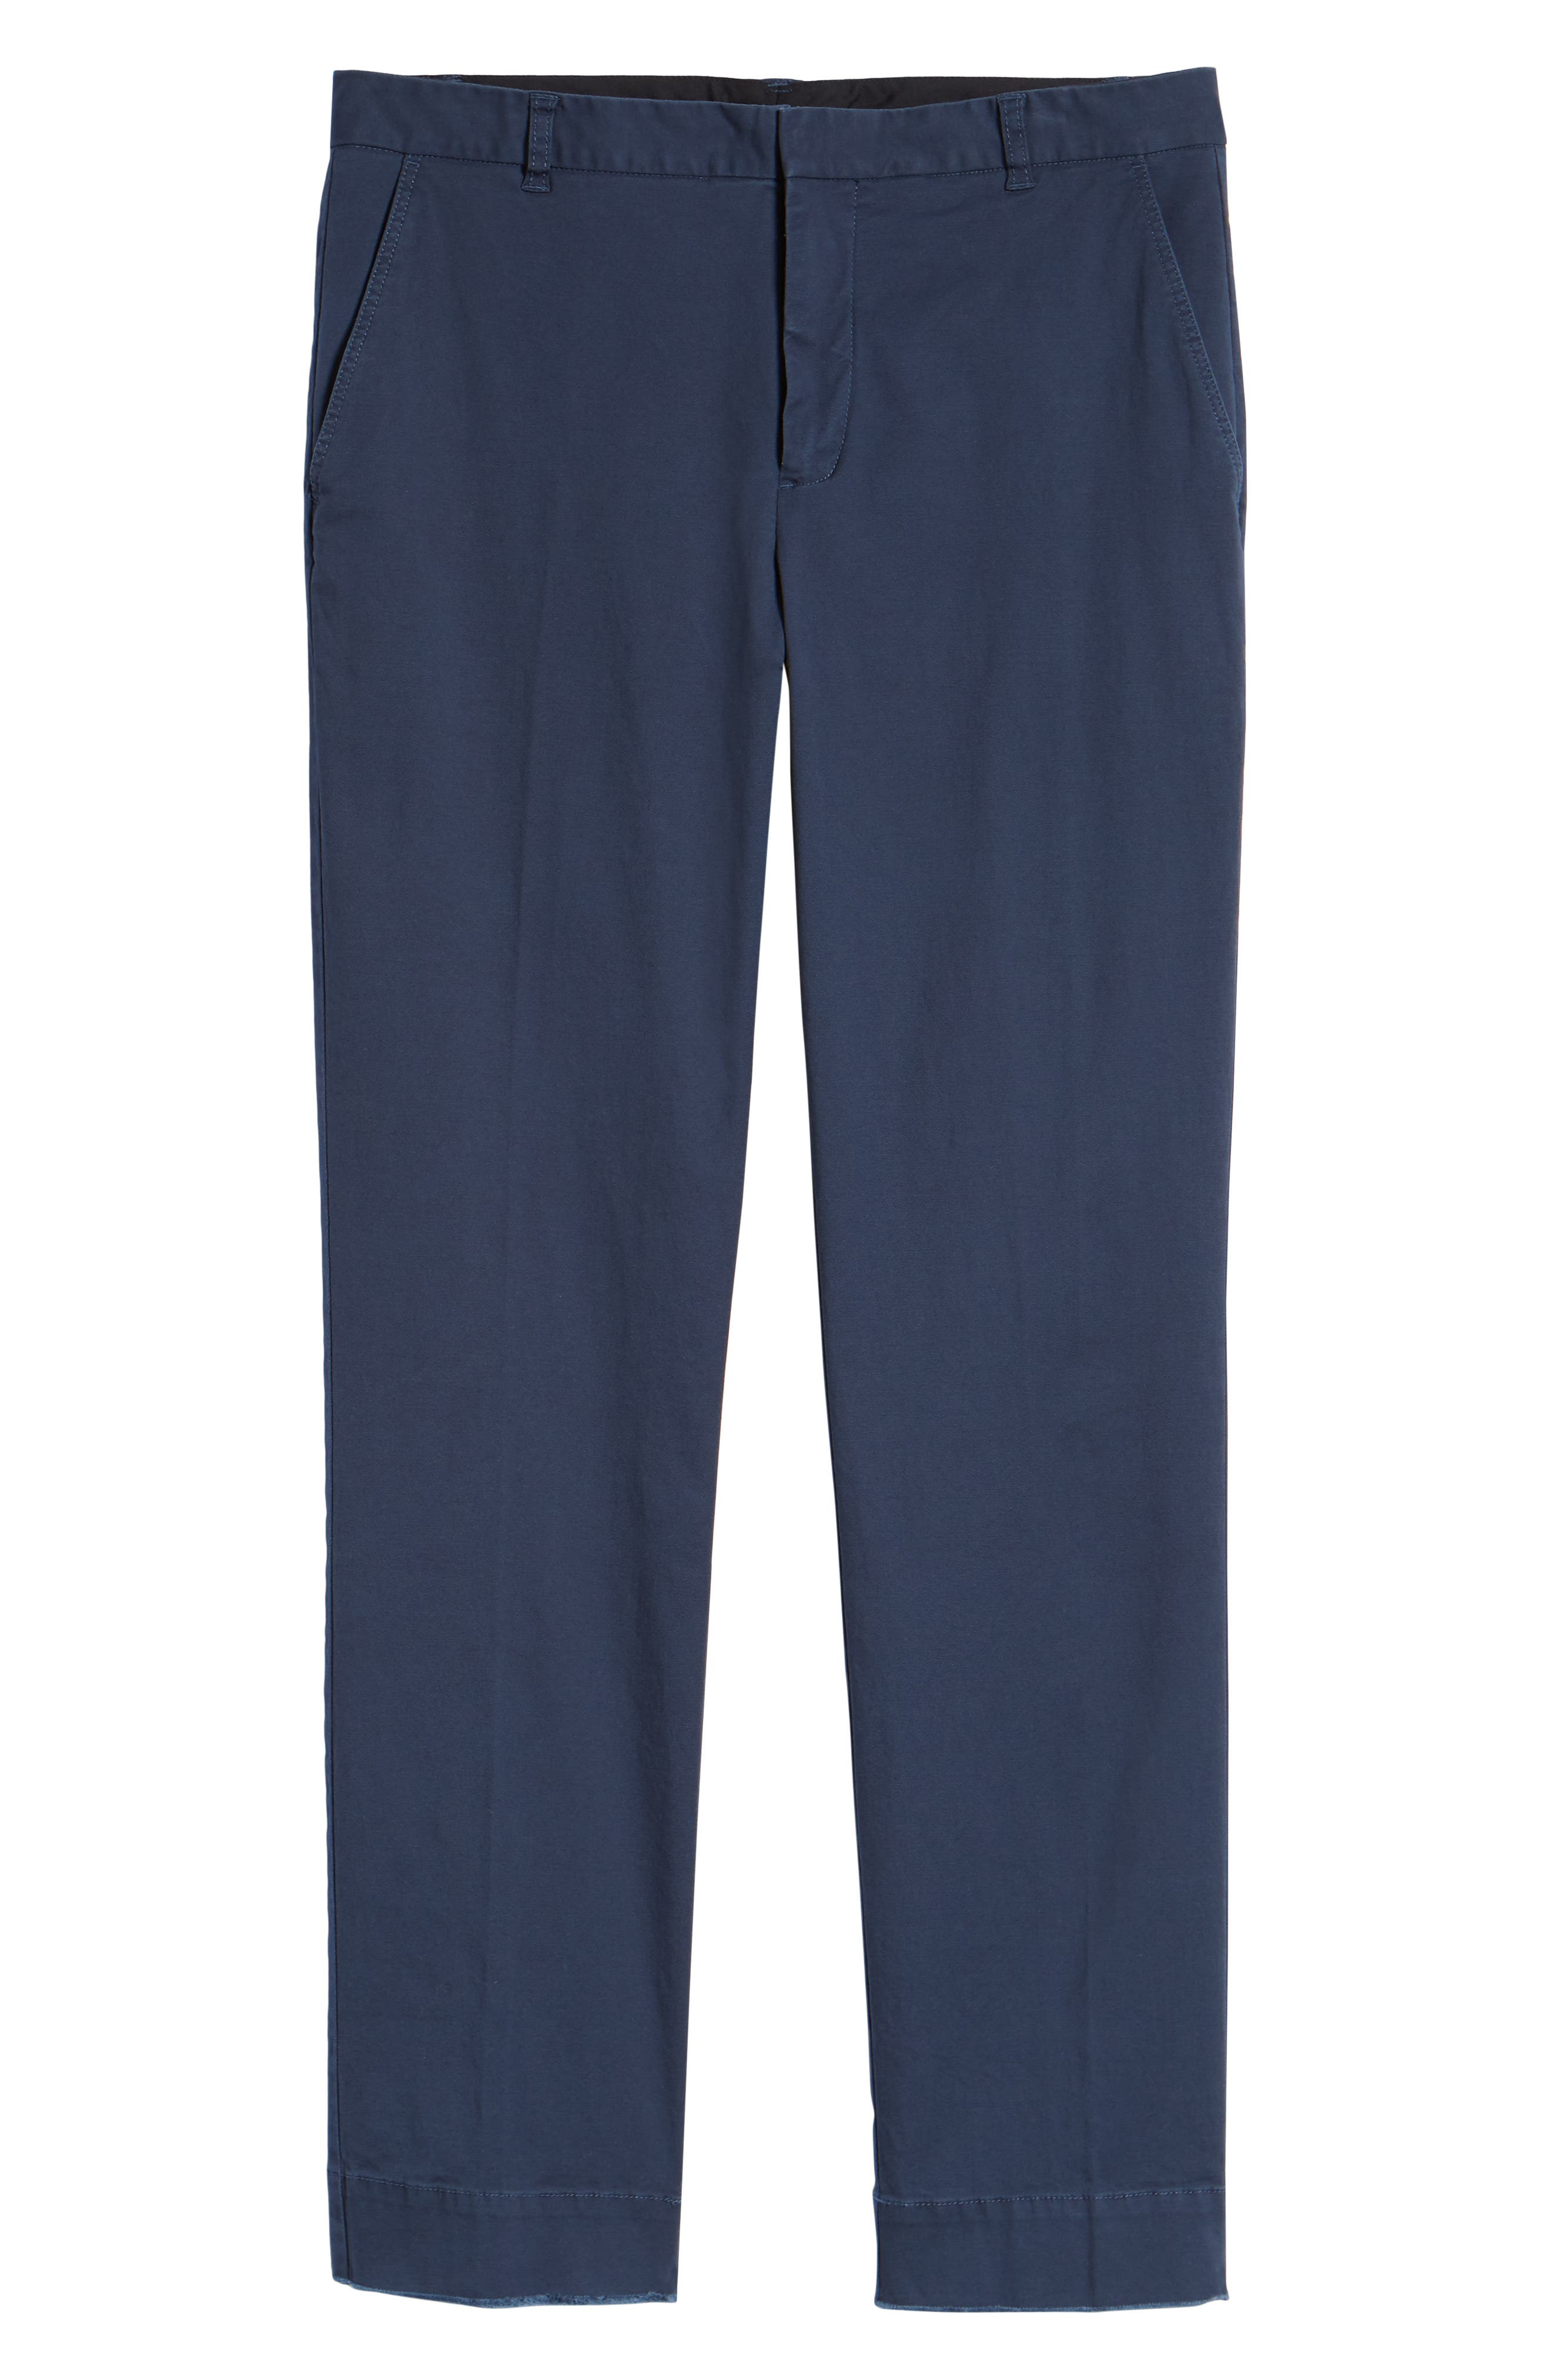 Slim Fit Stretch Twill Pants,                             Alternate thumbnail 6, color,                             Navy